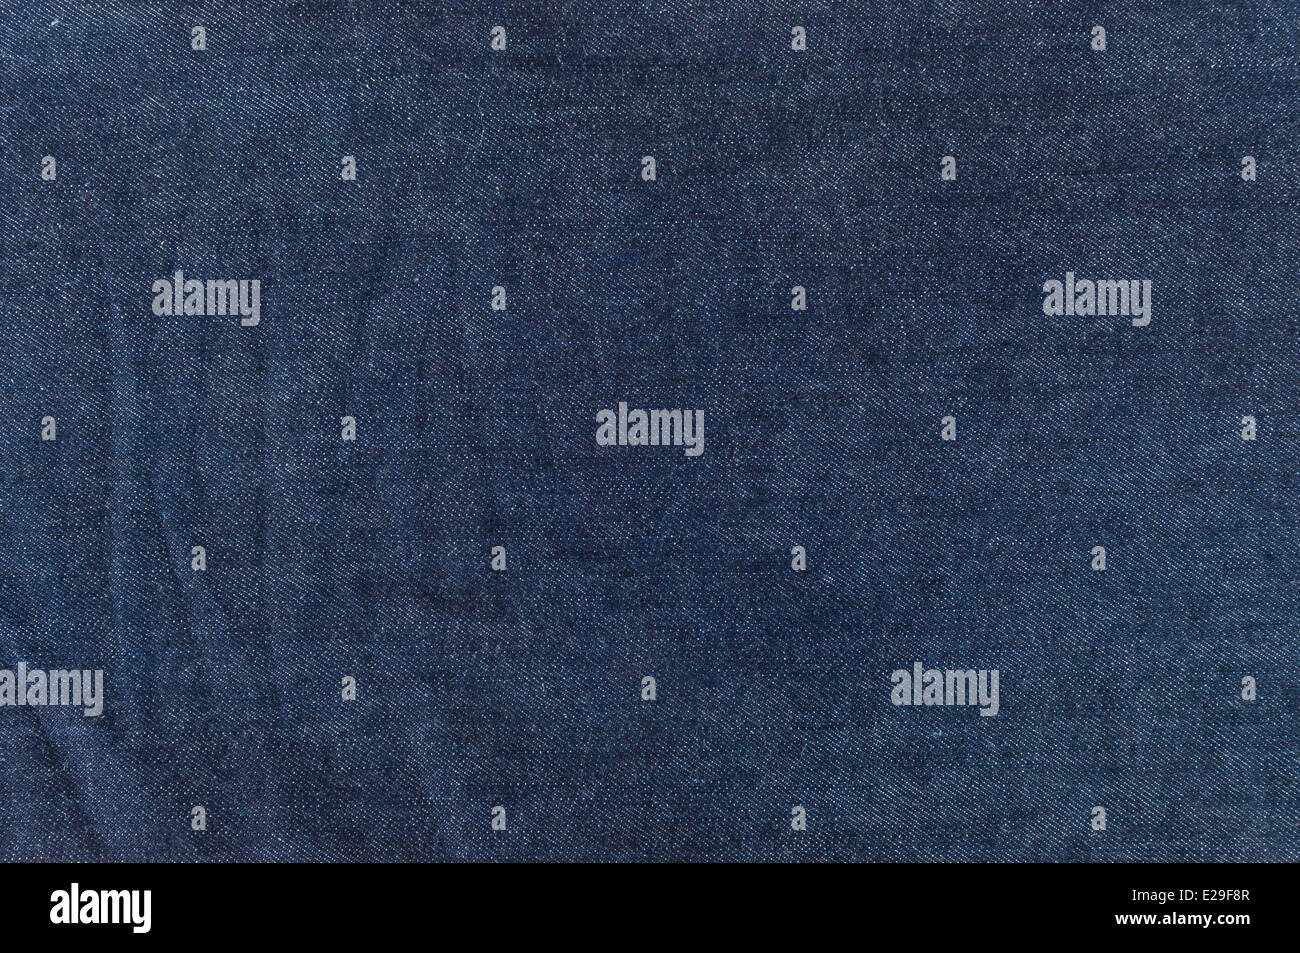 e63b0096d71 Close up of dark blue jeans texture for background Stock Photo ...